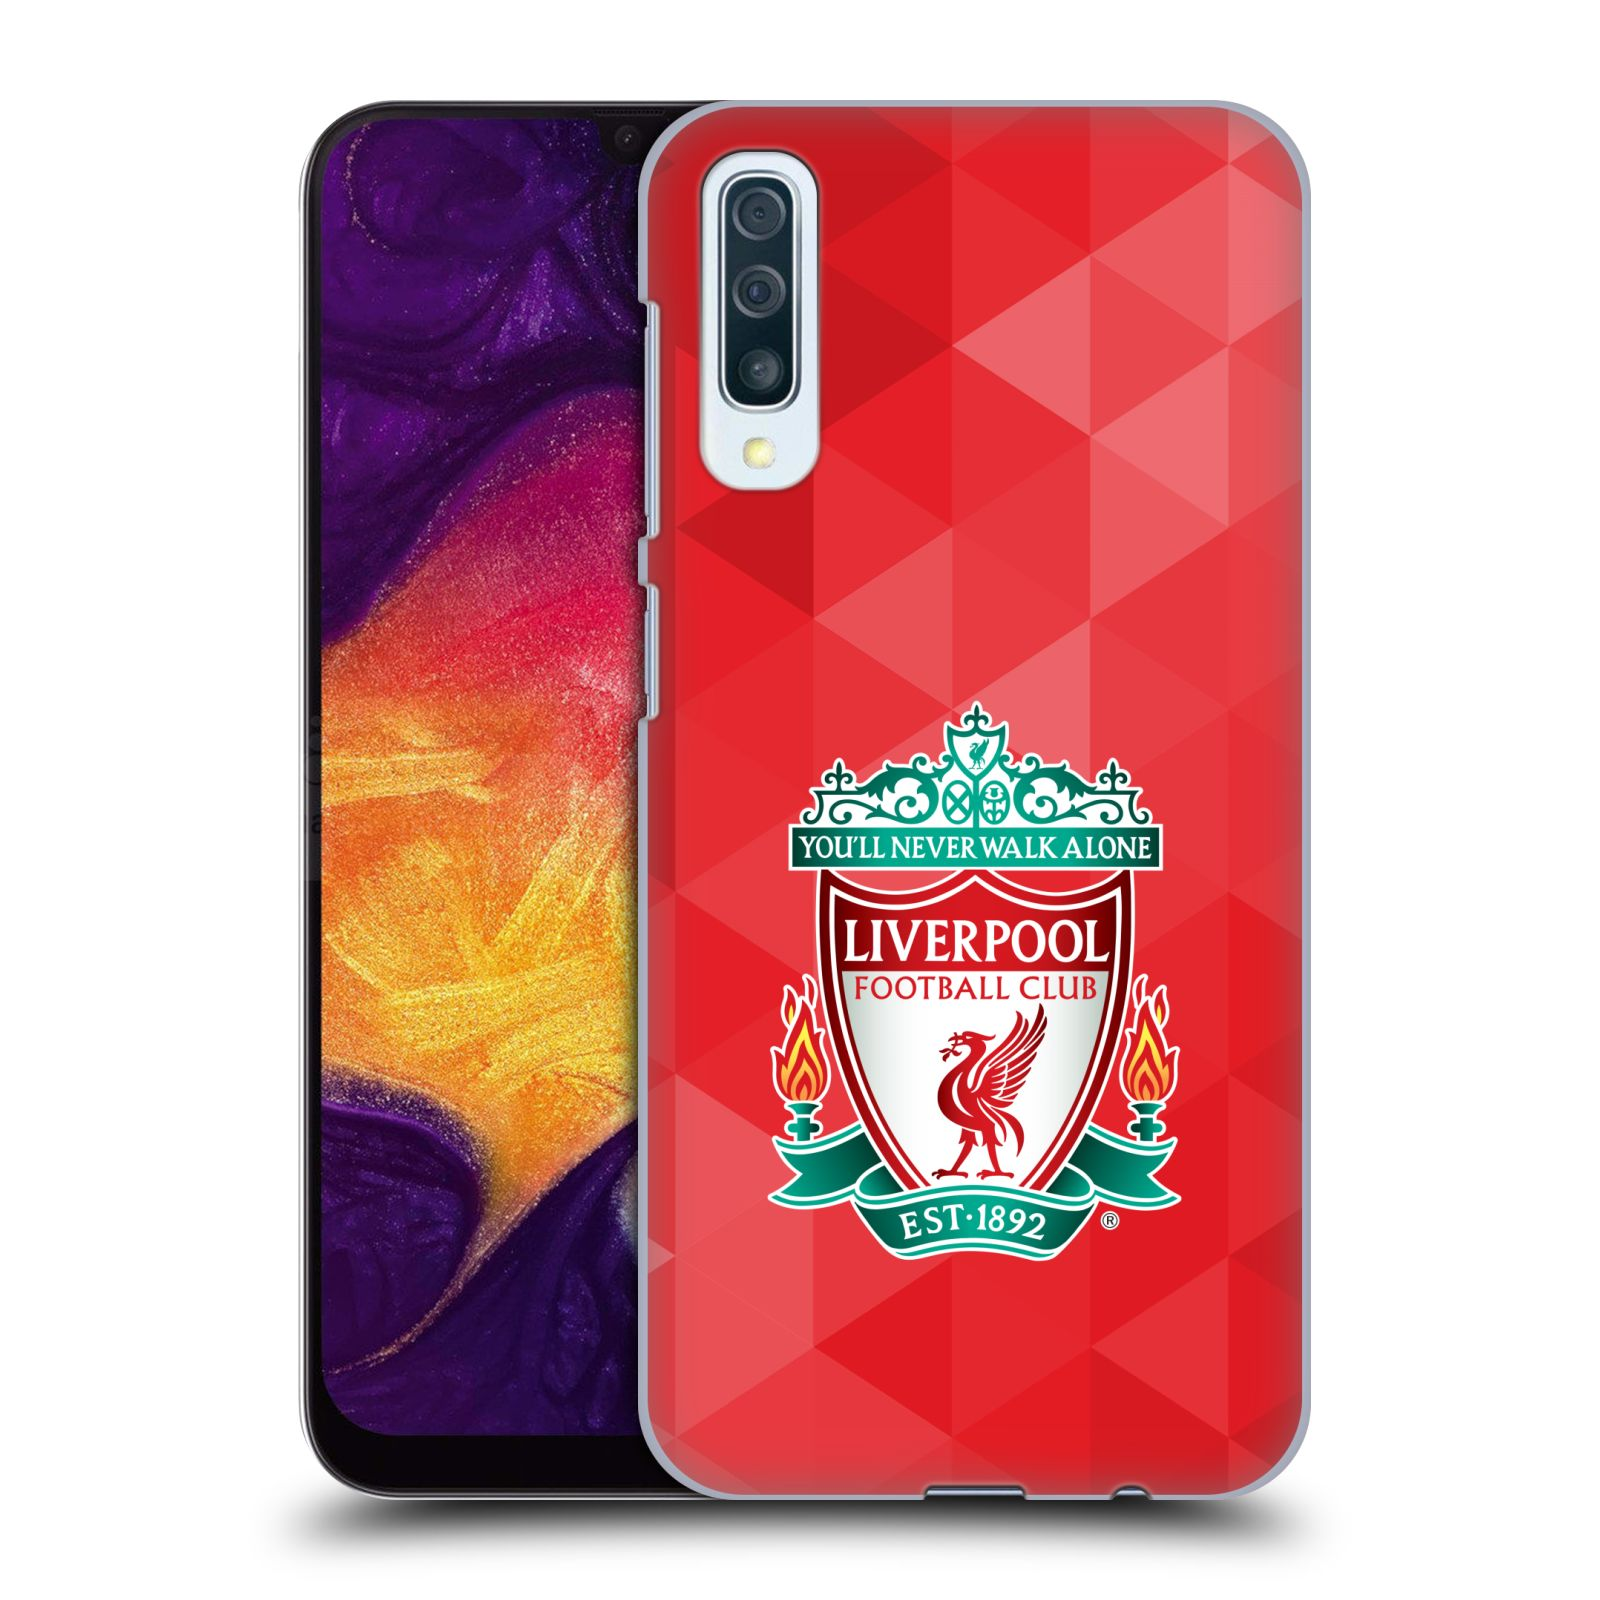 Plastové pouzdro na mobil Samsung Galaxy A50 - Head Case - ZNAK LIVERPOOL FC OFFICIAL GEOMETRIC RED